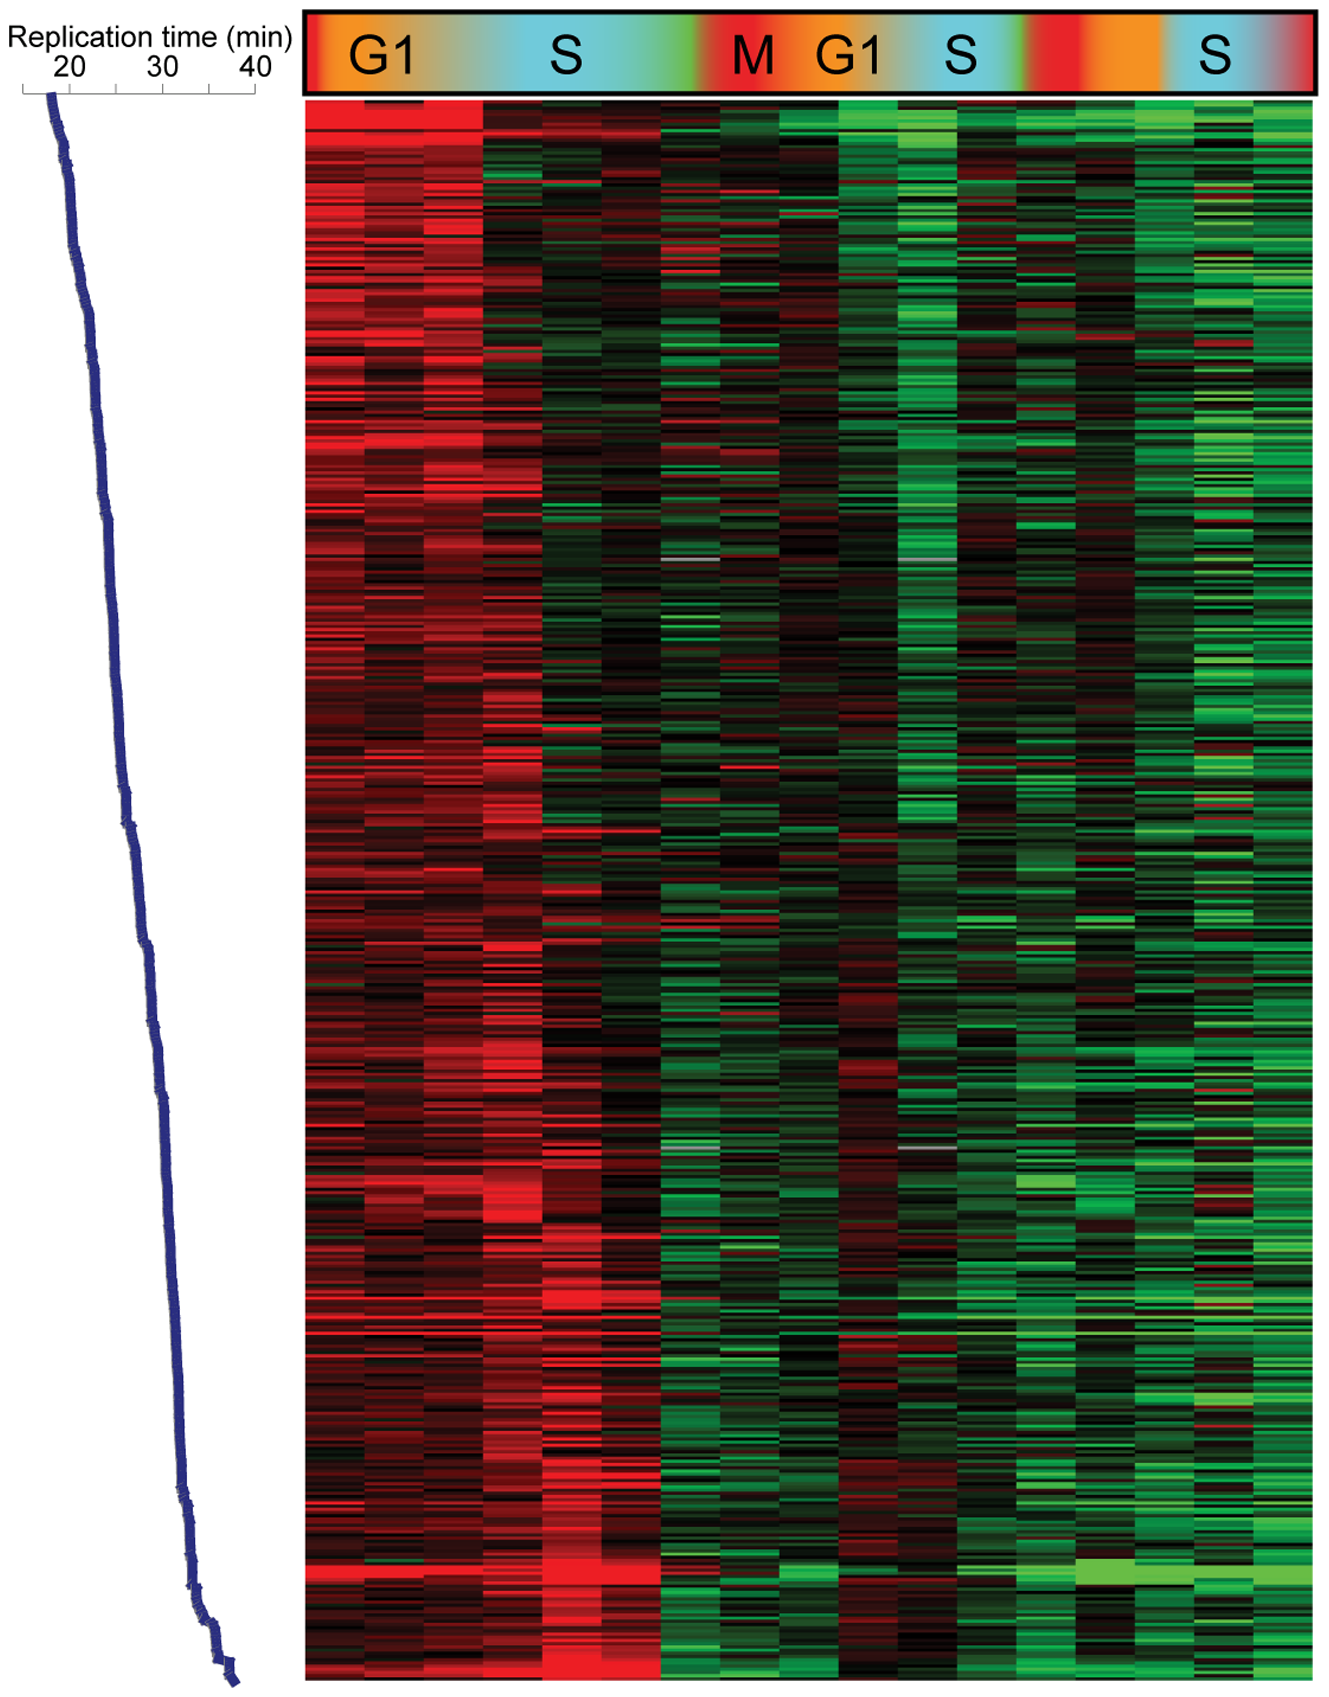 Replication-related loss of H3K4me3.